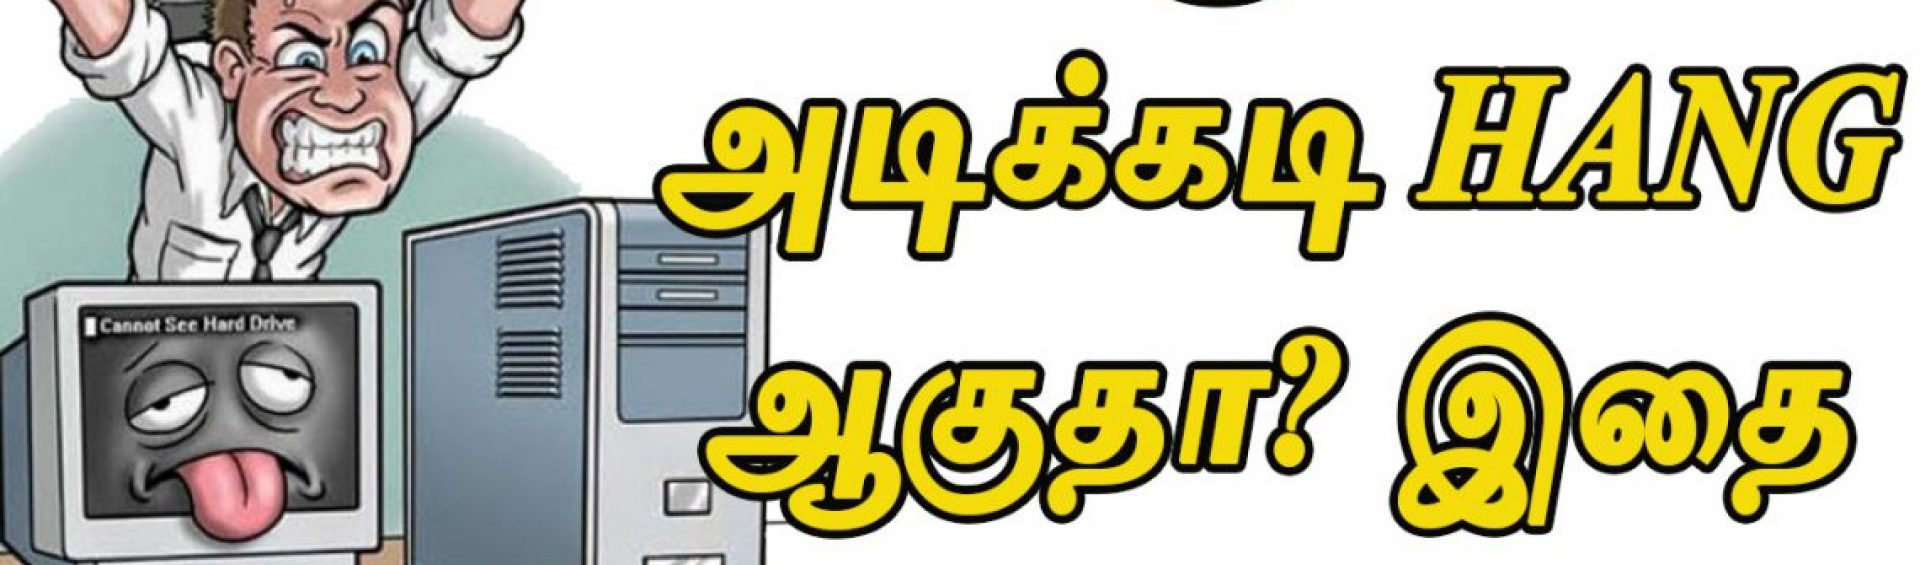 How To Increase Laptop Speed In few seconds In Tamil